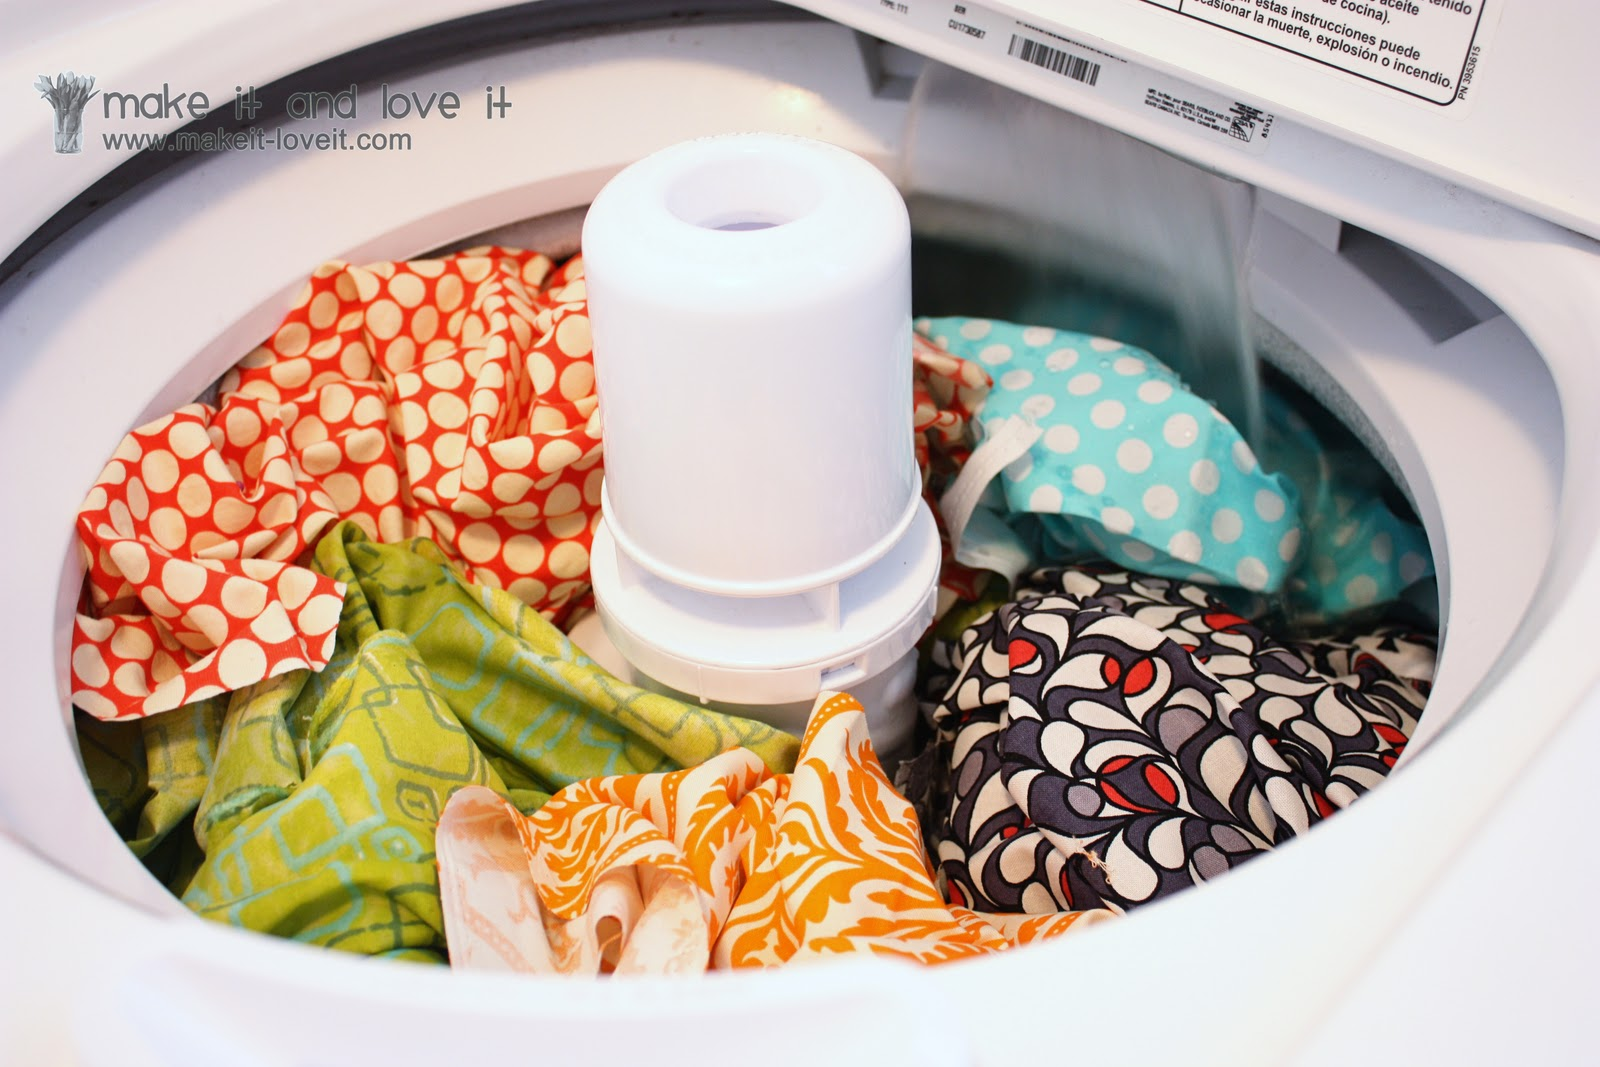 Sewing Tips: Pre-Washing – Make It and Love It